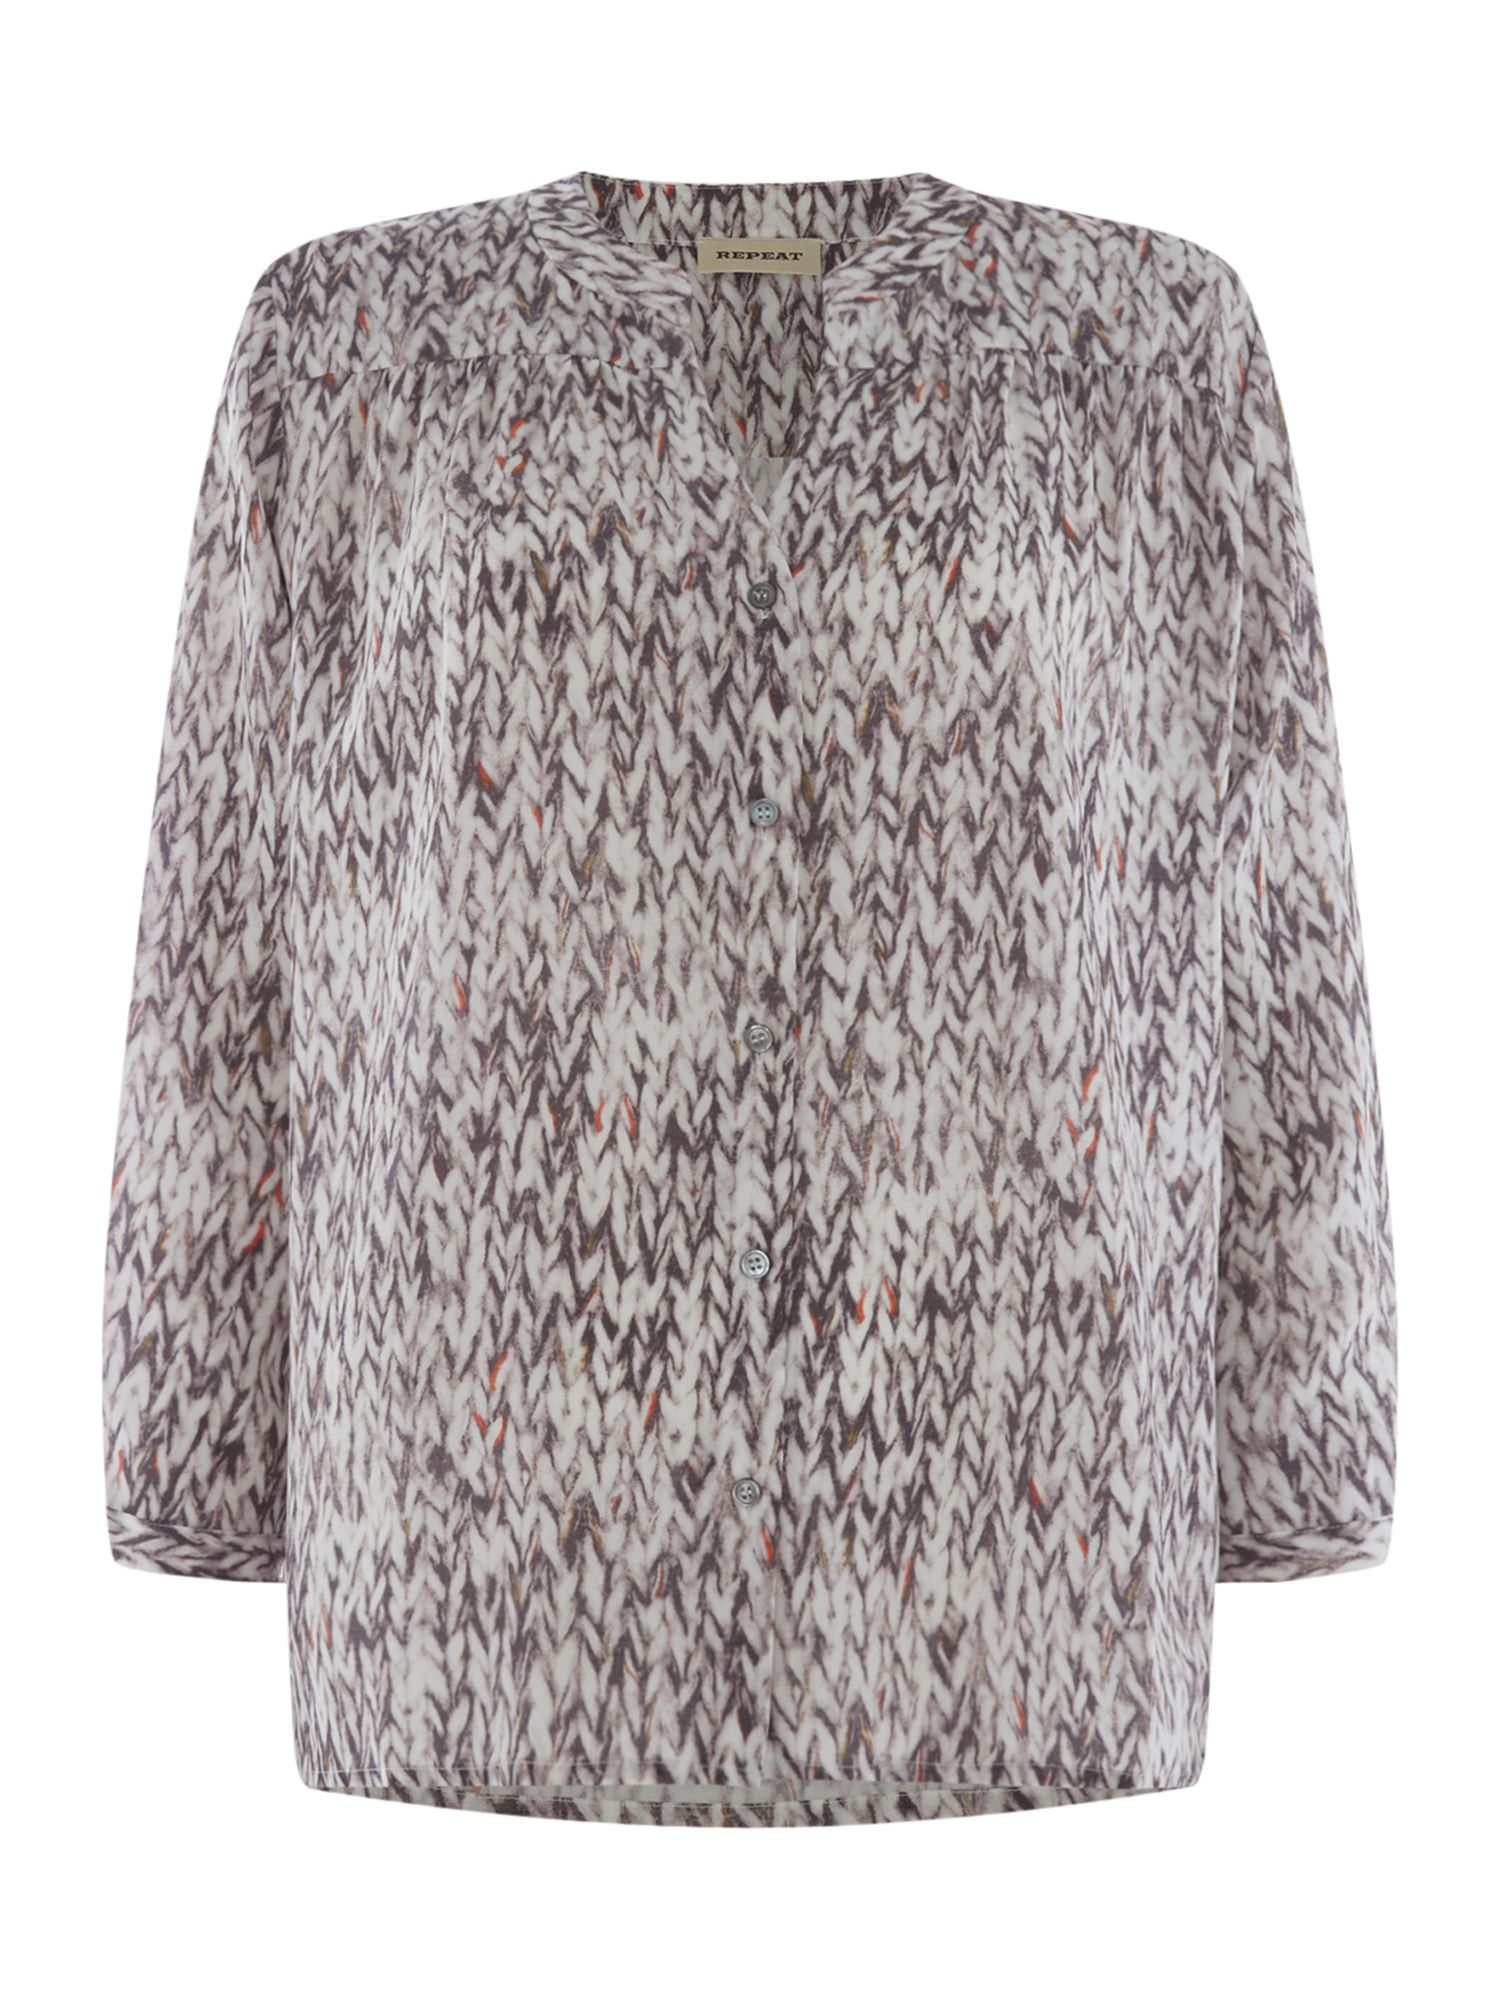 Repeat Cashmere Printed silk blouse with long sleeves, Stone